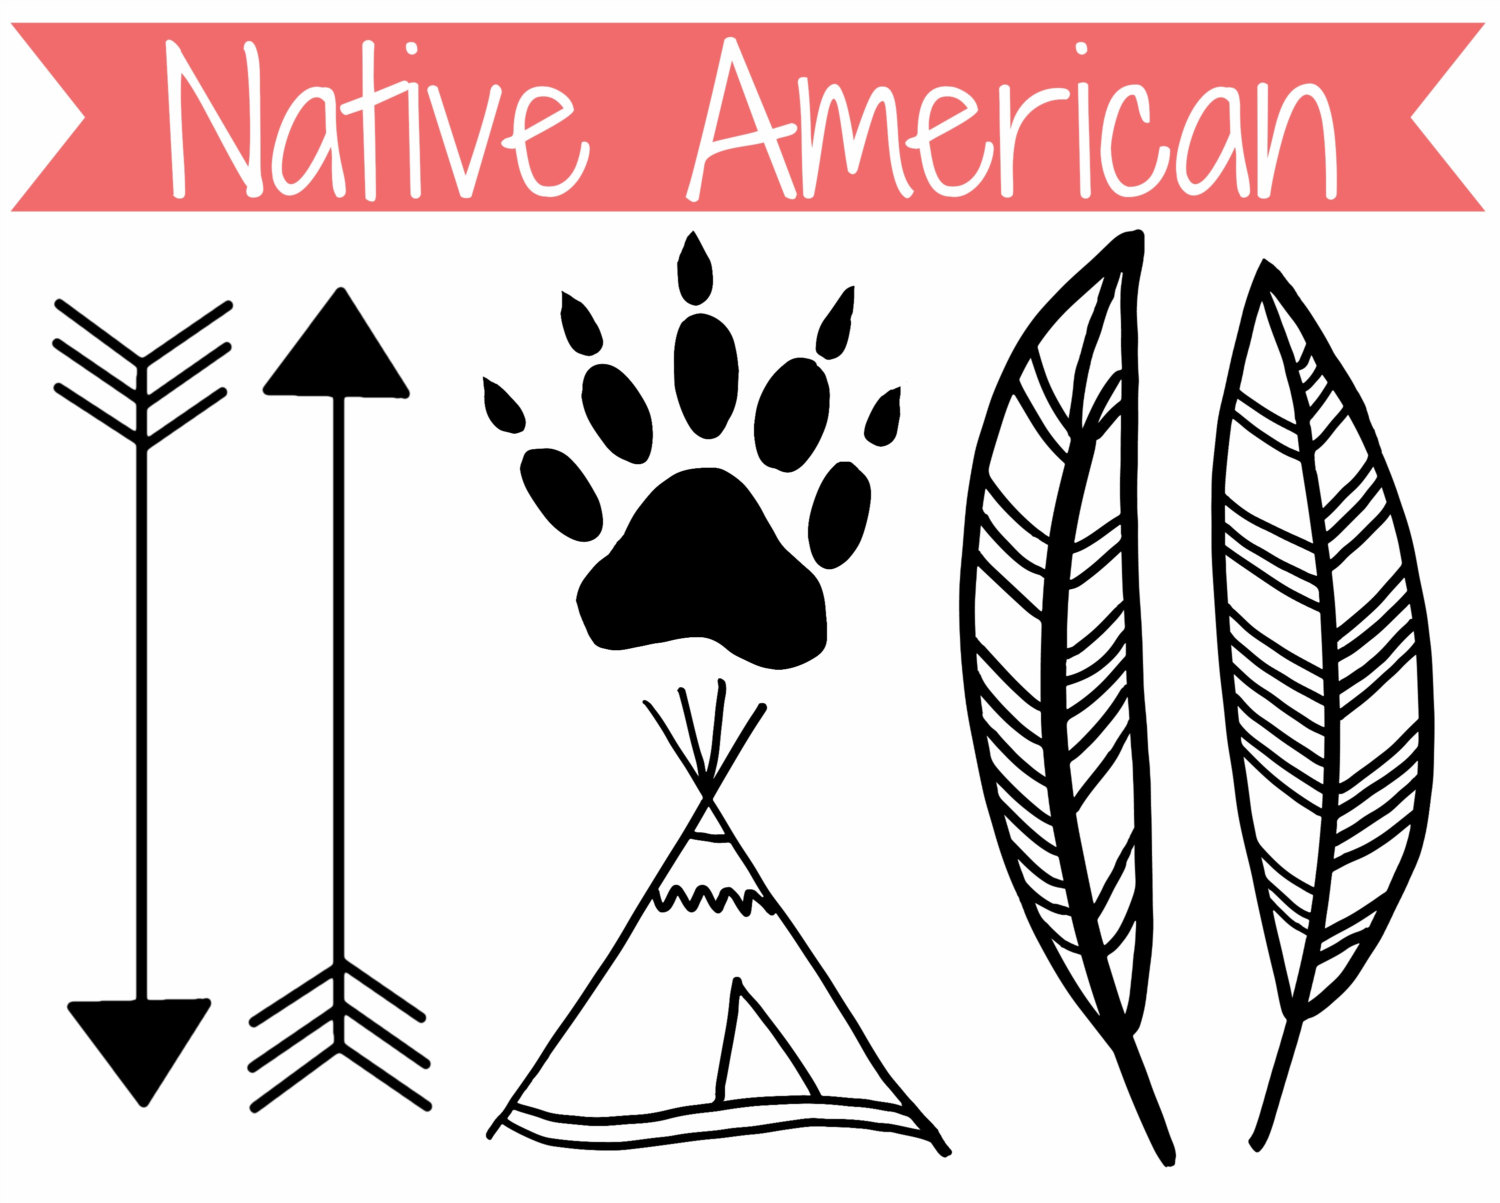 Native american clipart black and white.